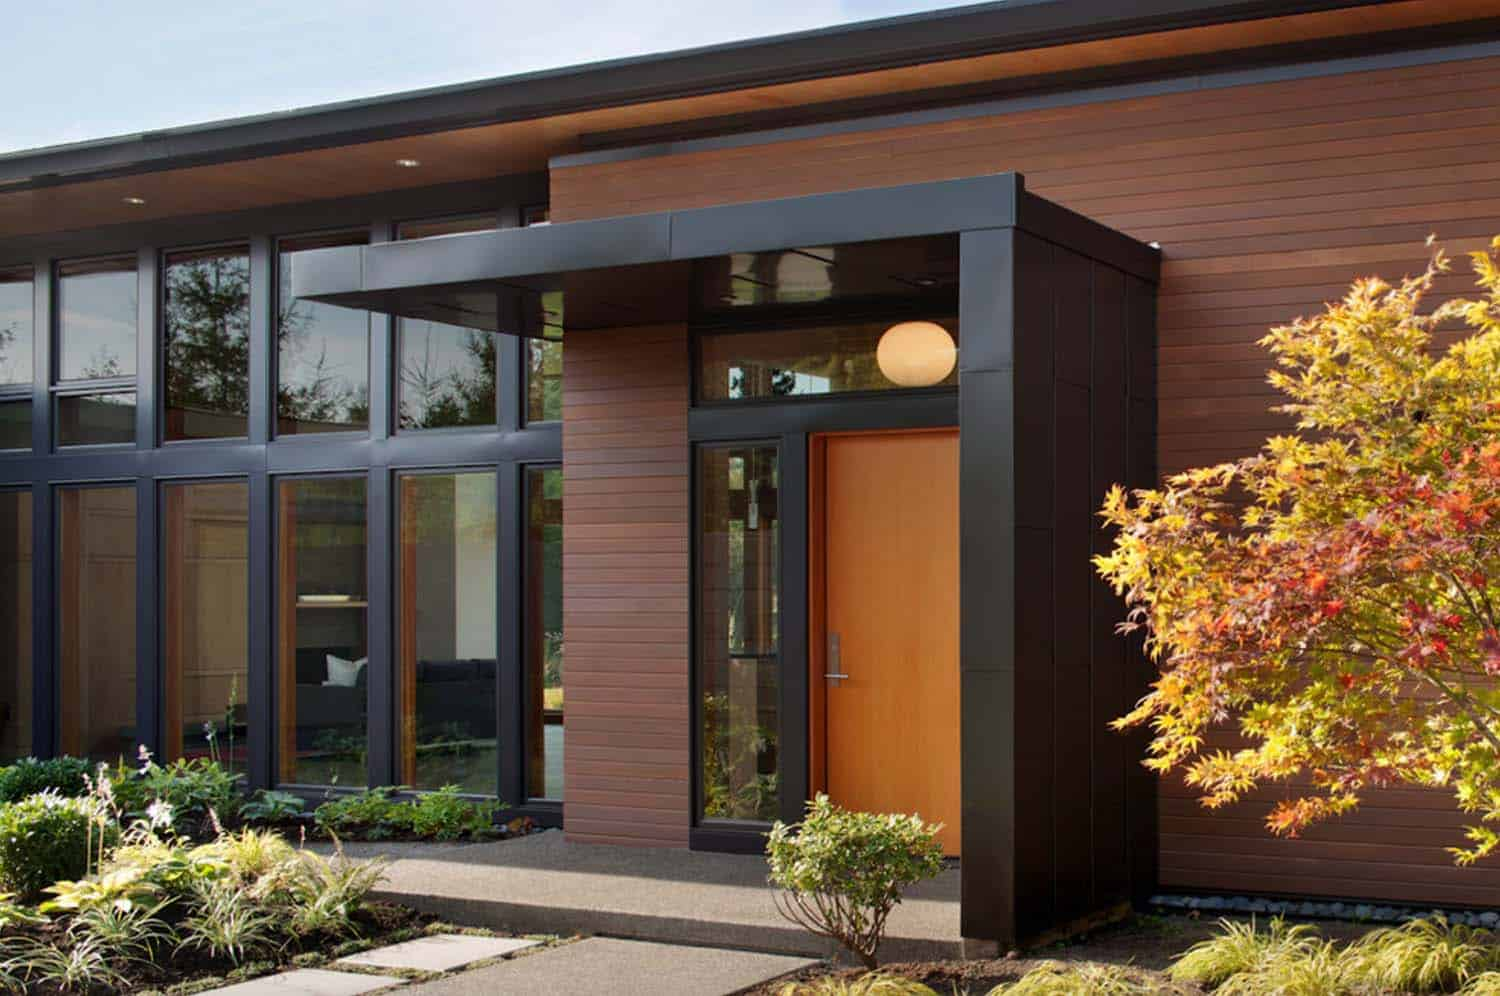 Livable Modern Home-Coates Design Architects-04-1 Kindesign